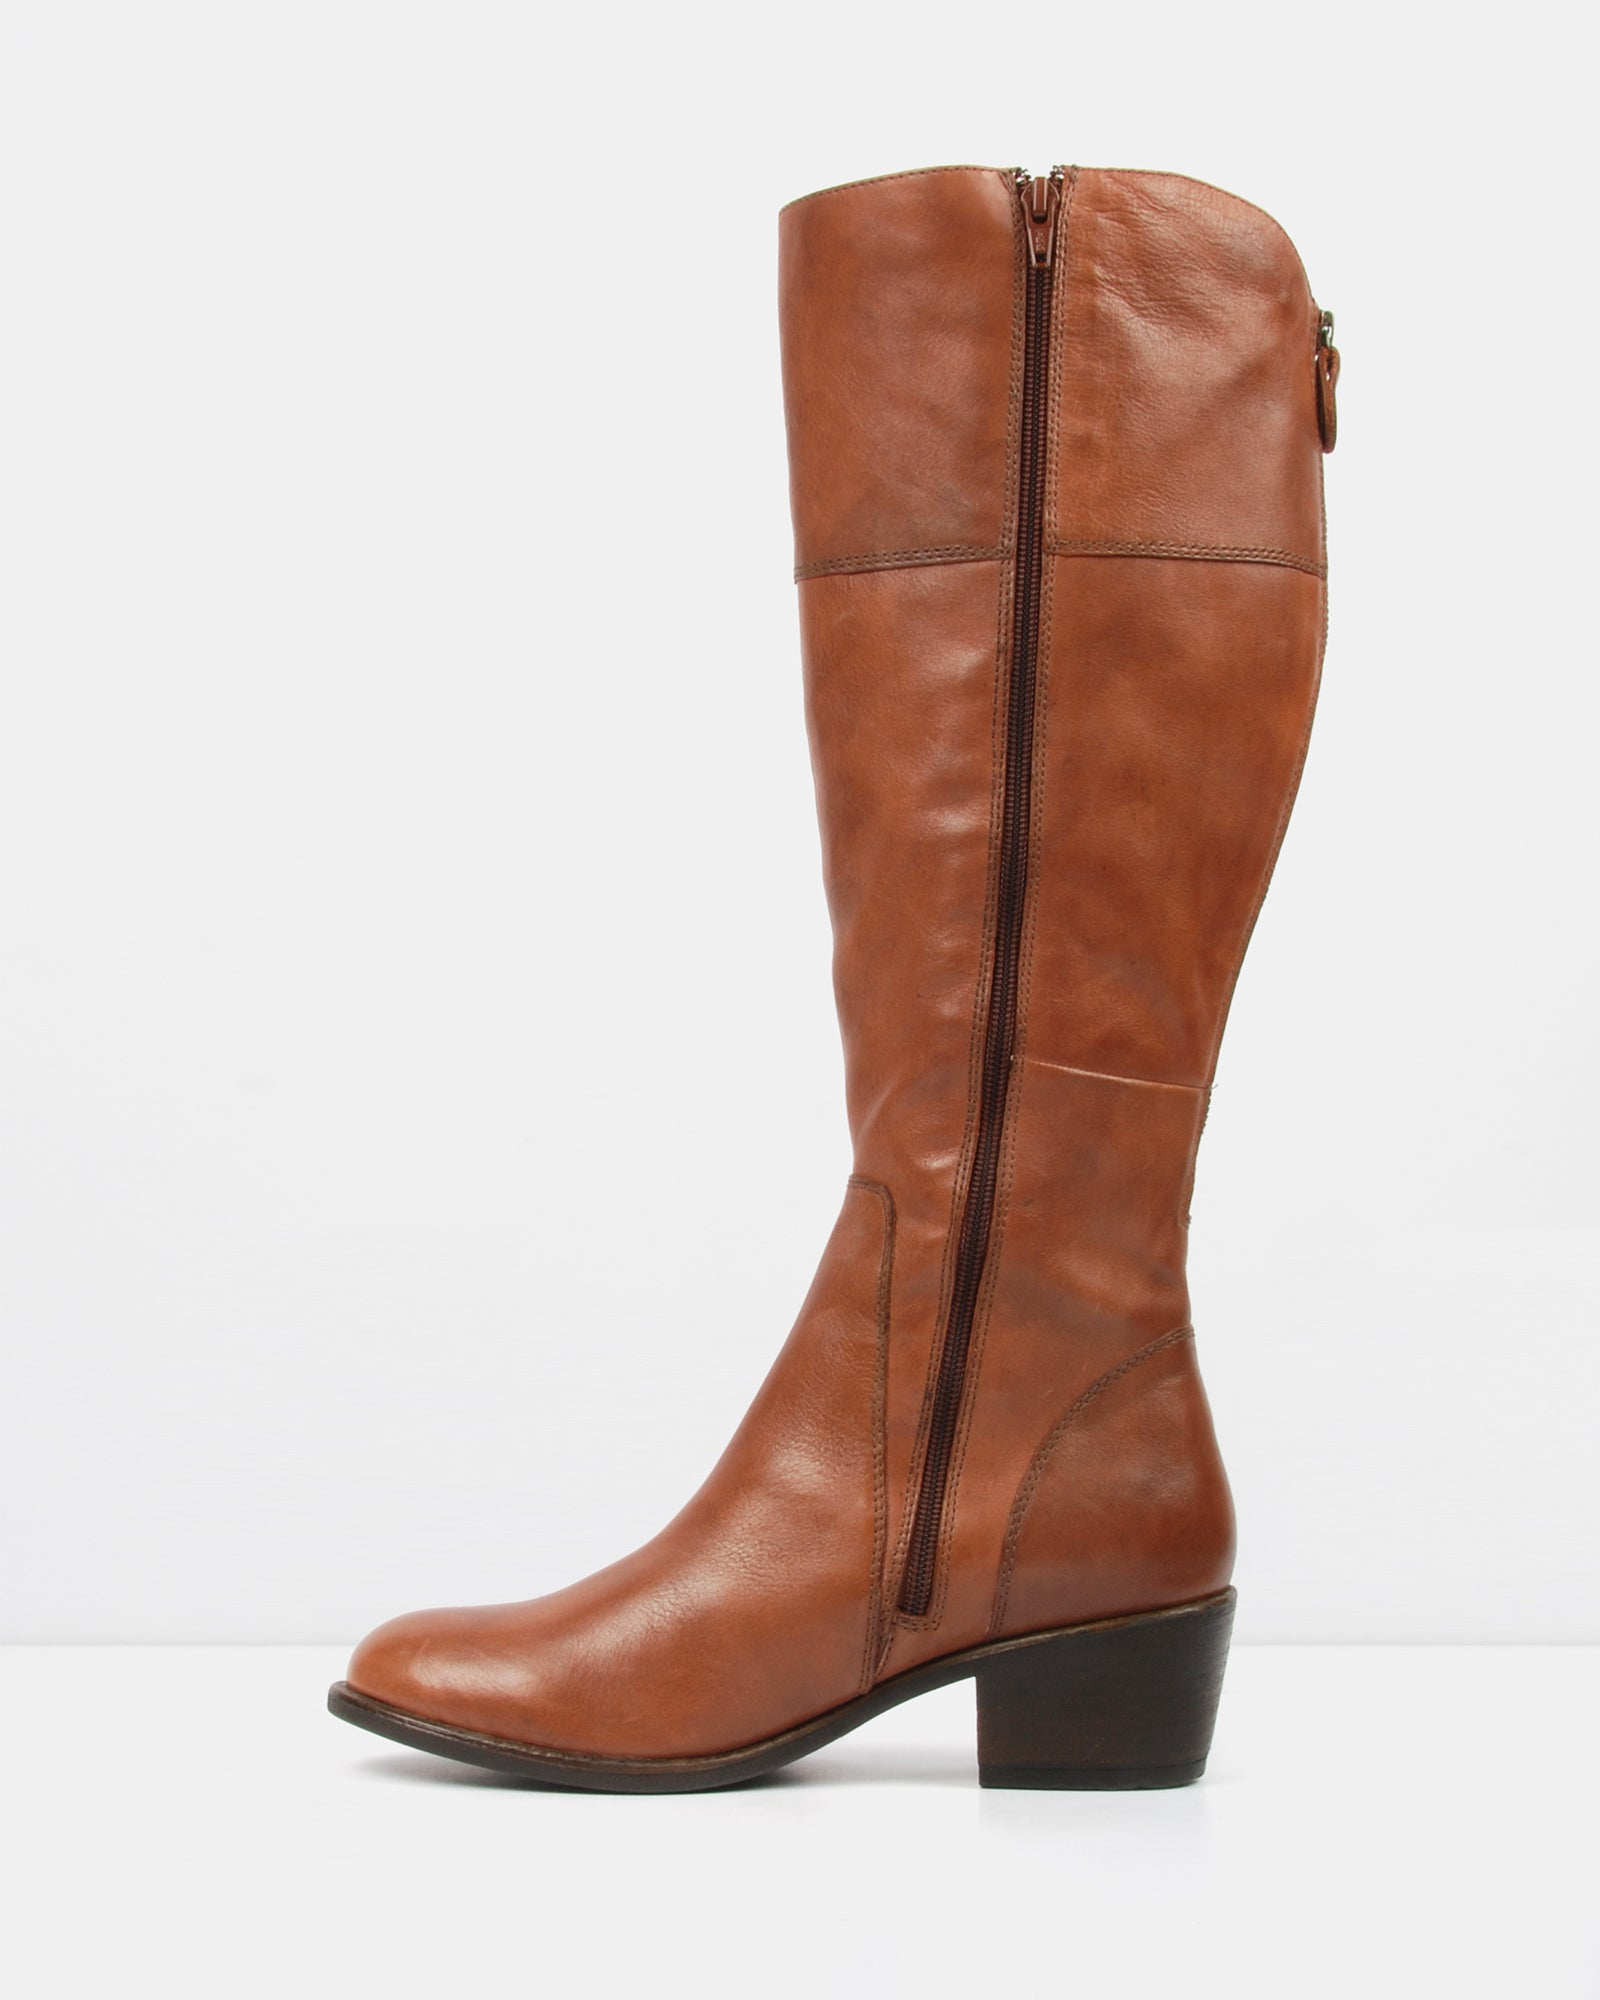 YANG - WIDE MID KNEE BOOTS COGNAC LEATHER